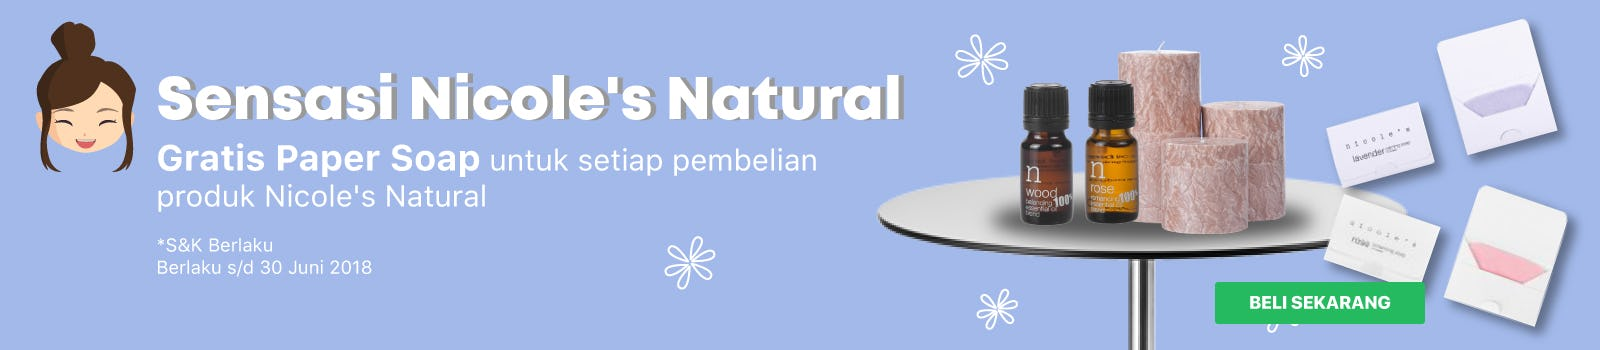 Nicole's Natural Free Paper Soap